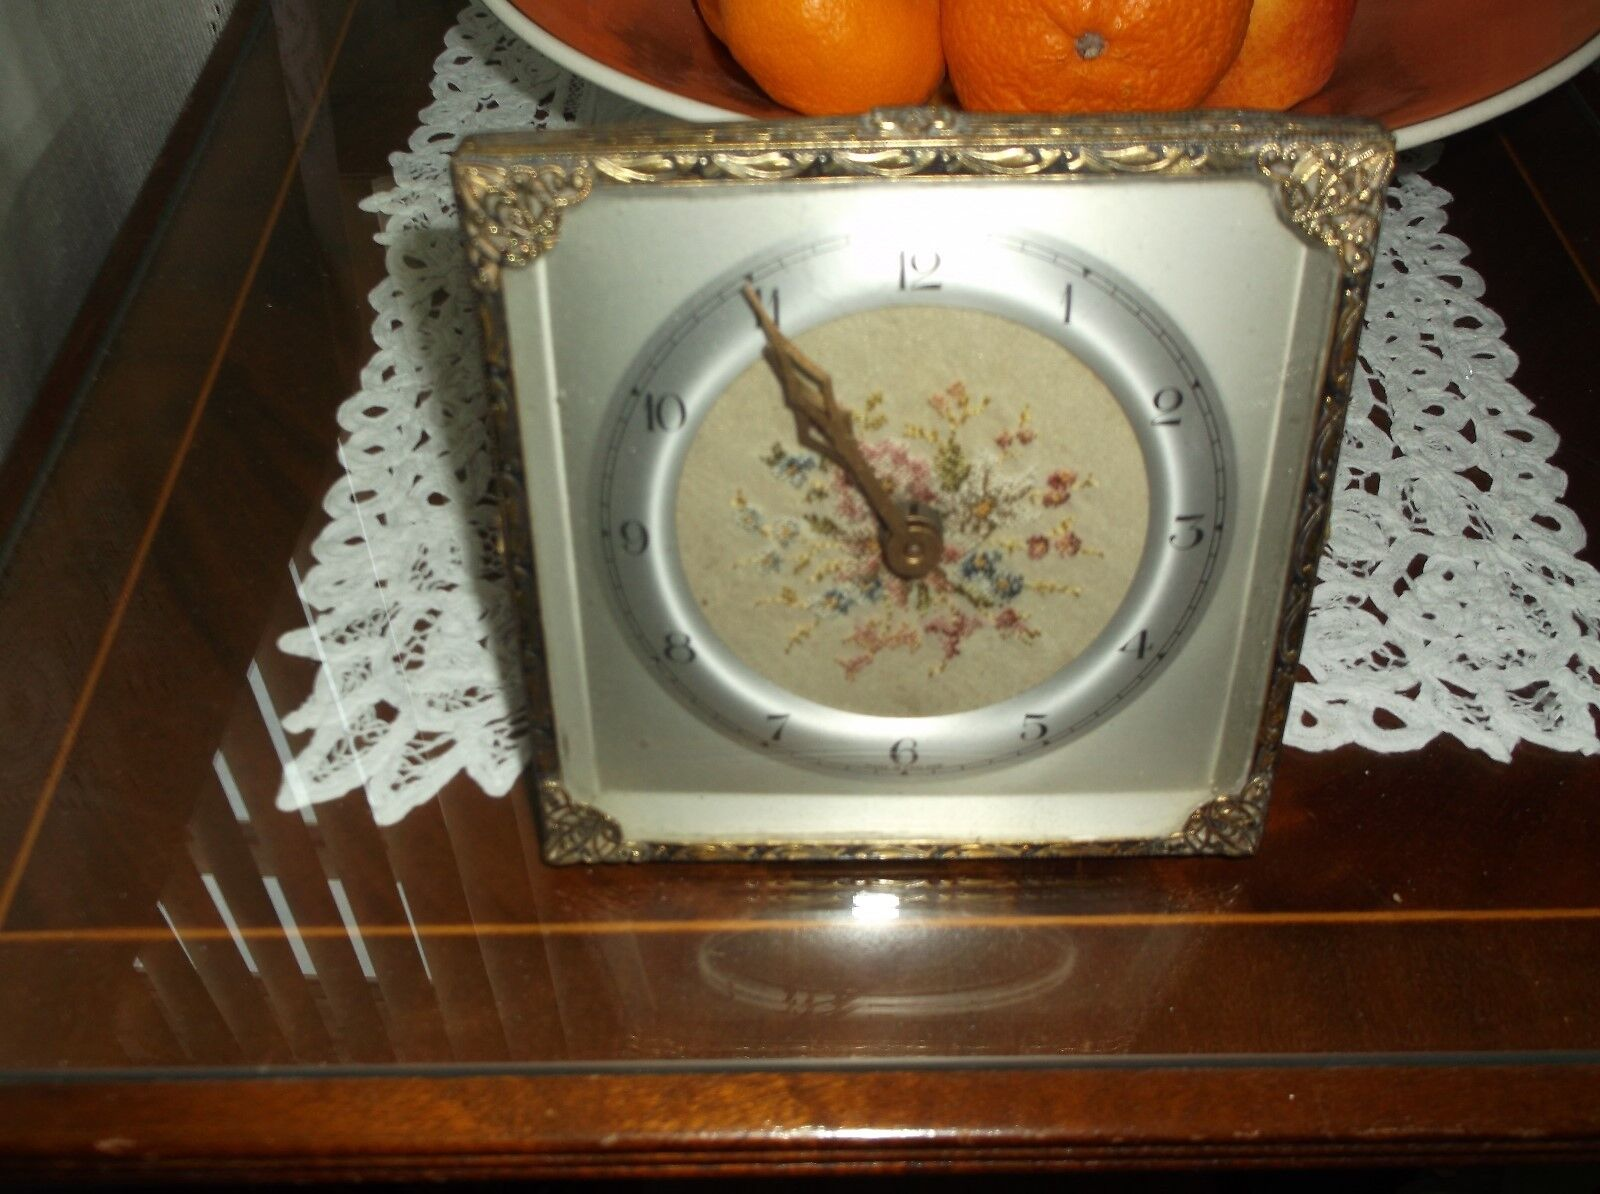 Vintage filigree square  clock Petit point enbroidered measures 5-1/4x5-1/4 inch